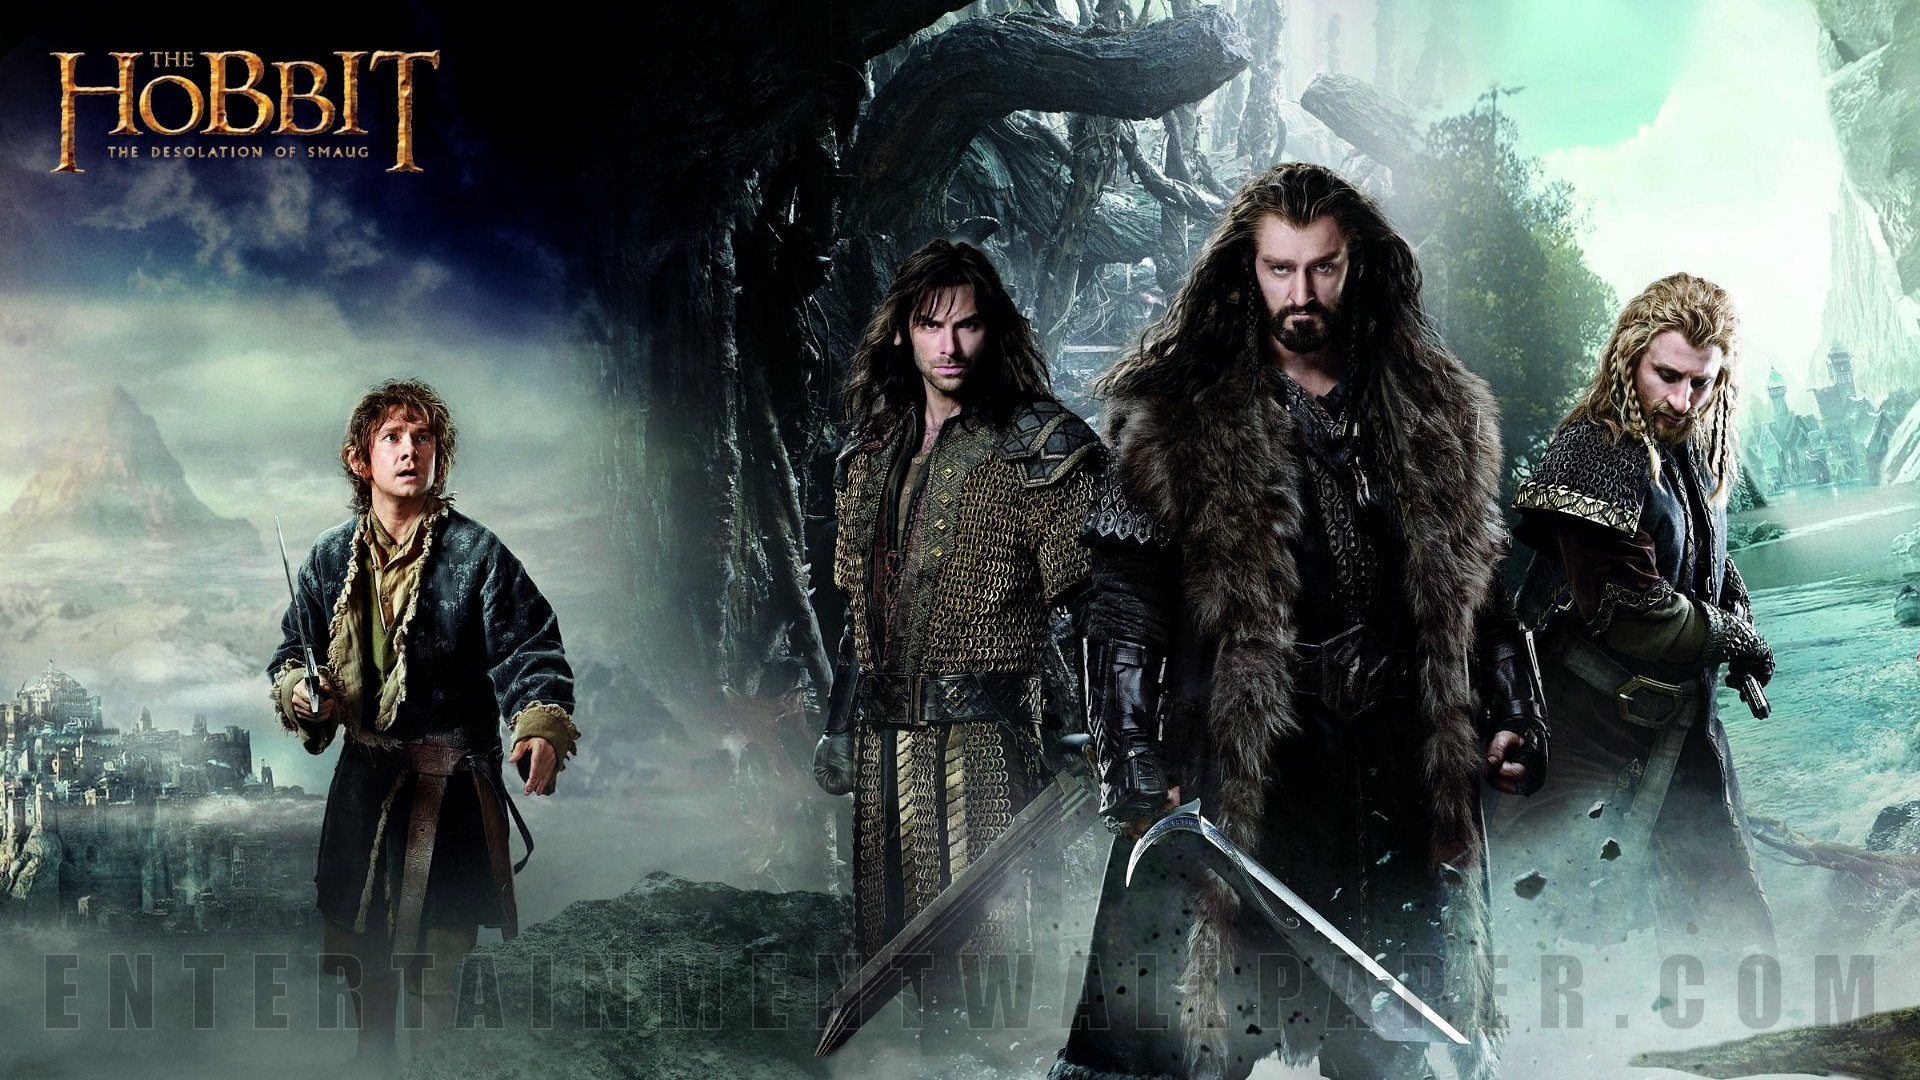 The Hobbit: The Desolation of Smaug Wallpaper – Original size, download now.